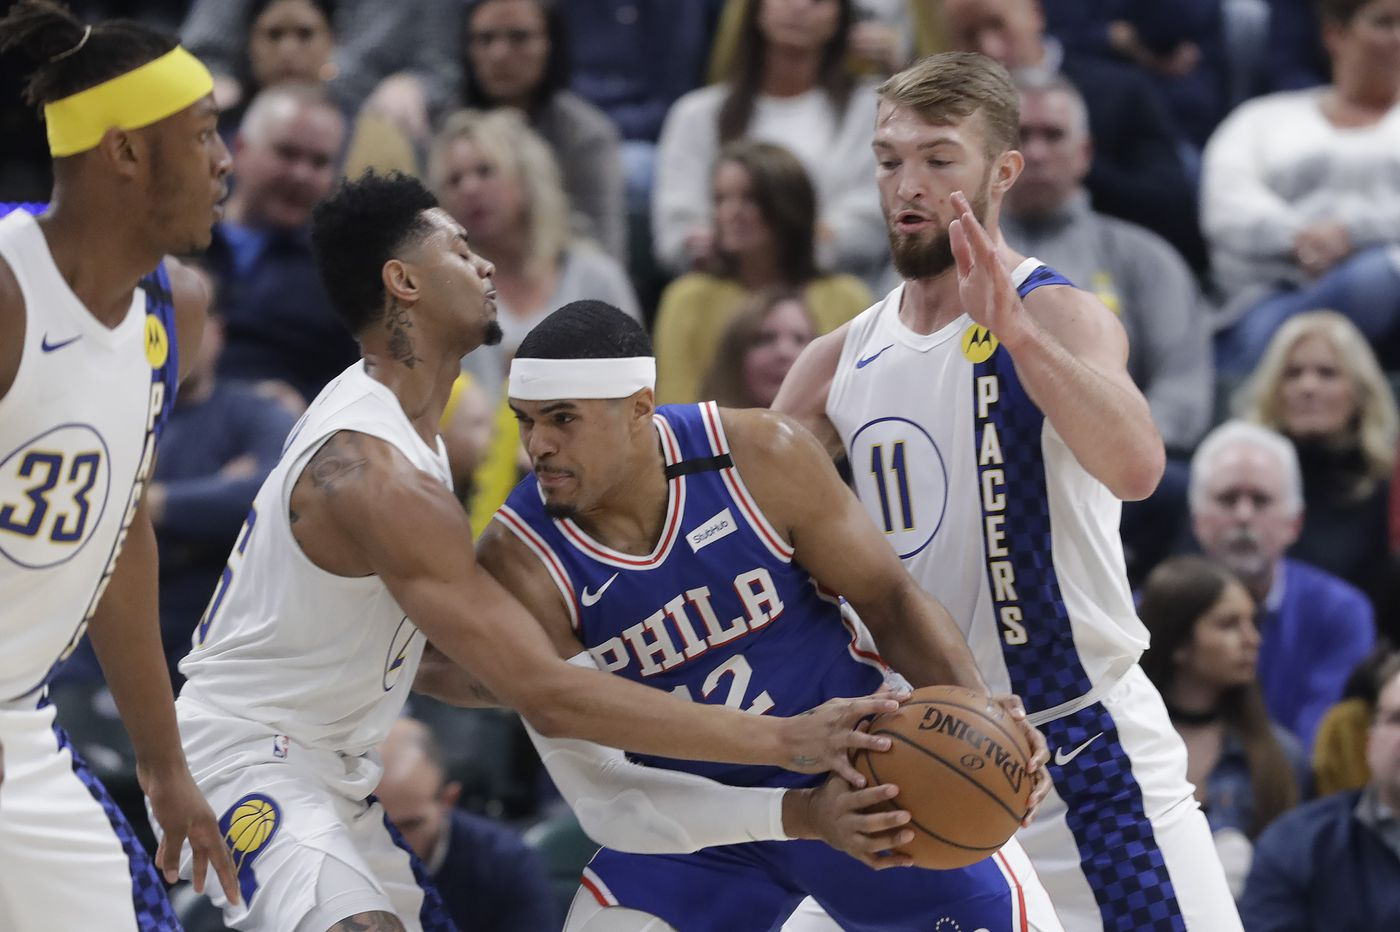 NBA trade deadline: Sixers' perimeter woes are not limited to shooting. Lack of crunch-time scoring needs to be addressed | David Murphy